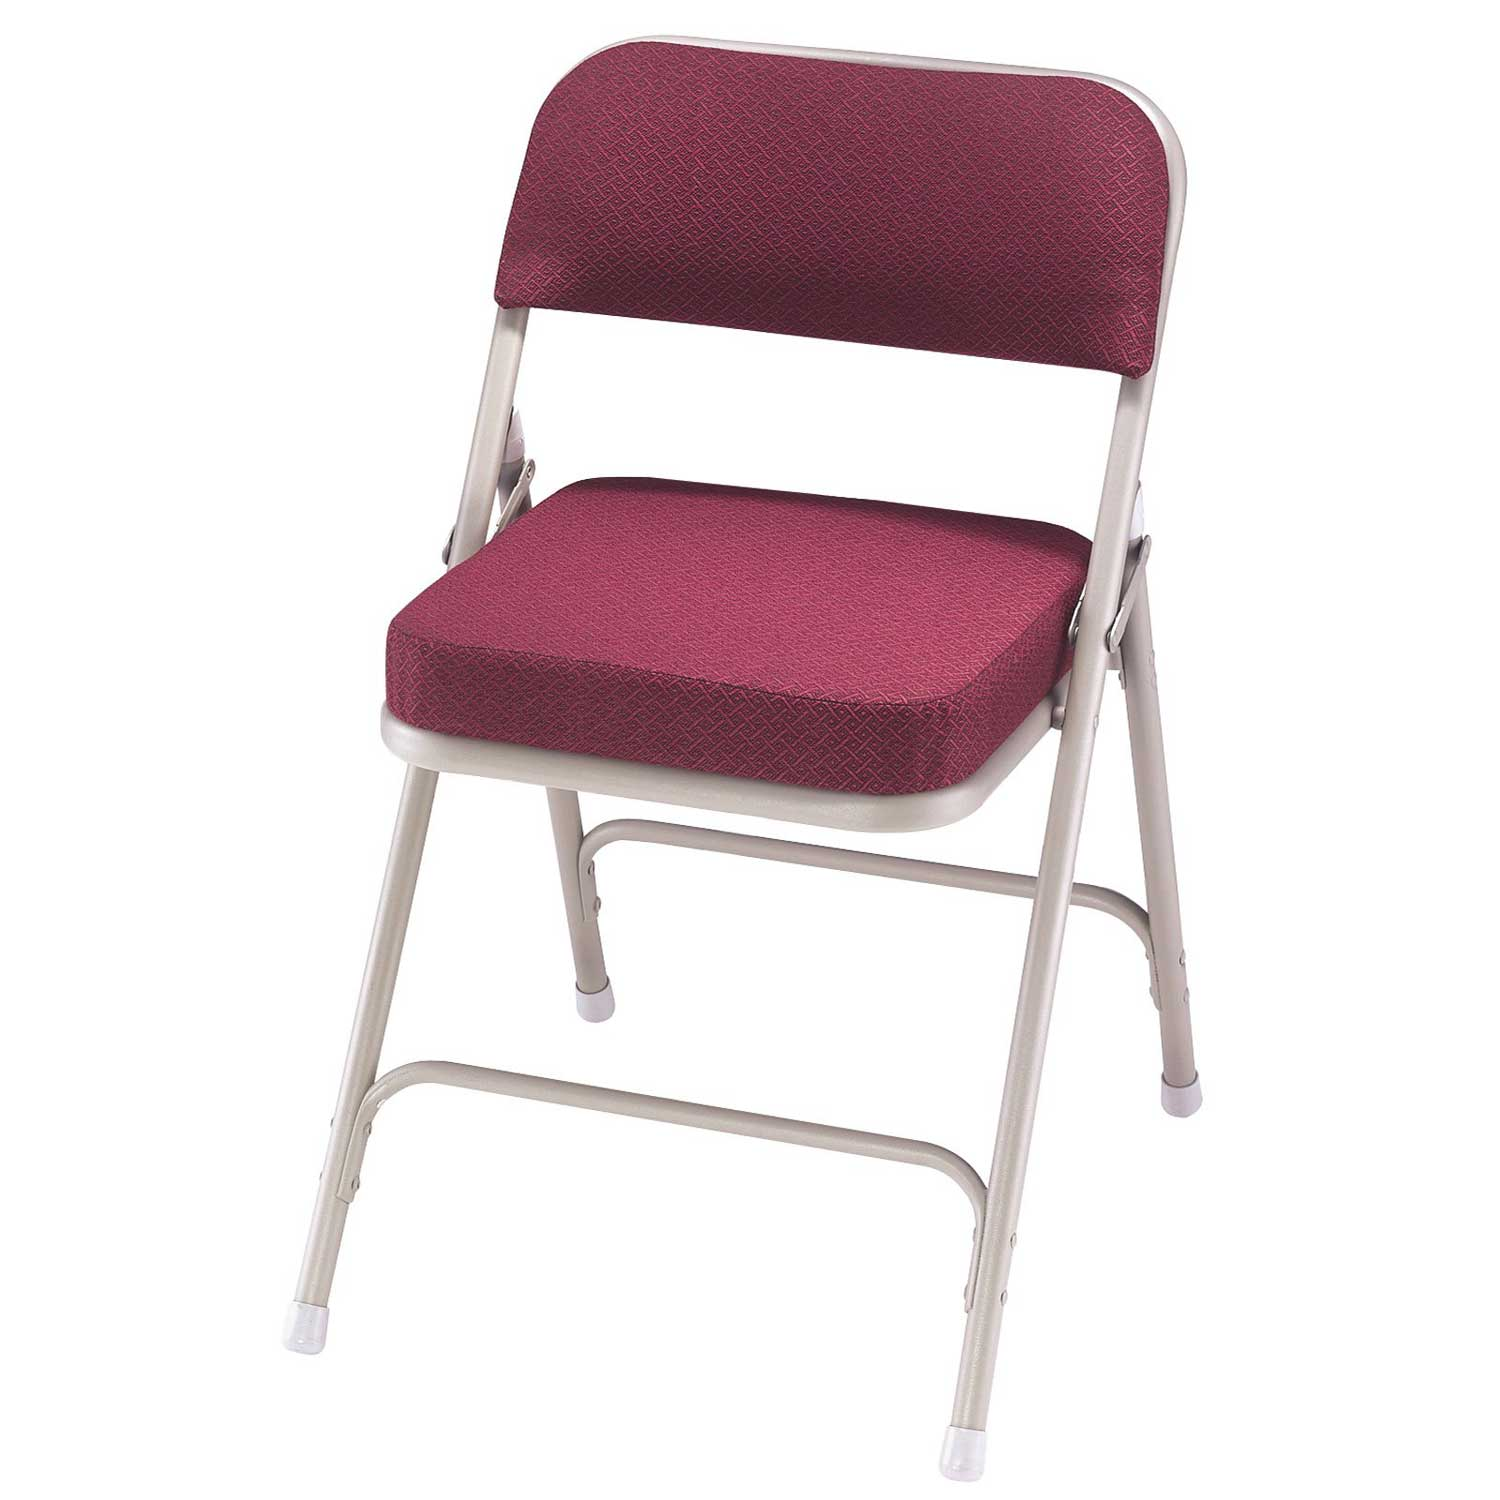 National Sleek Magenta Folding Padded Chairs